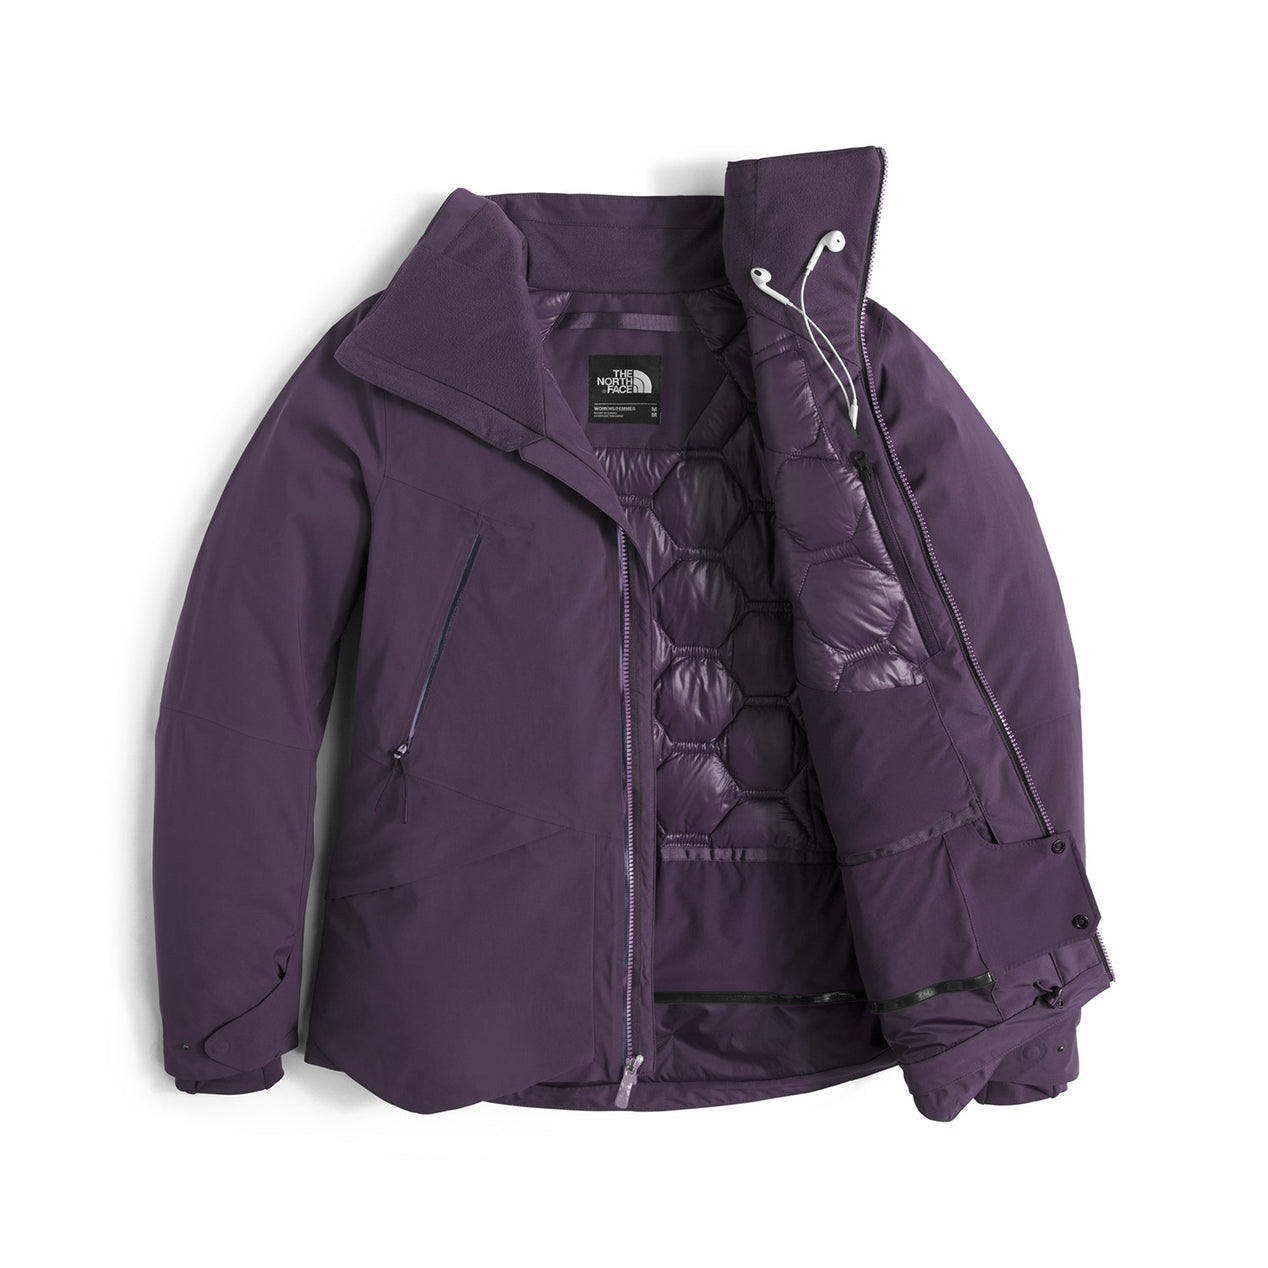 9f4257579 The North Face Women's Diameter Down Hybrid Jacket Past Season